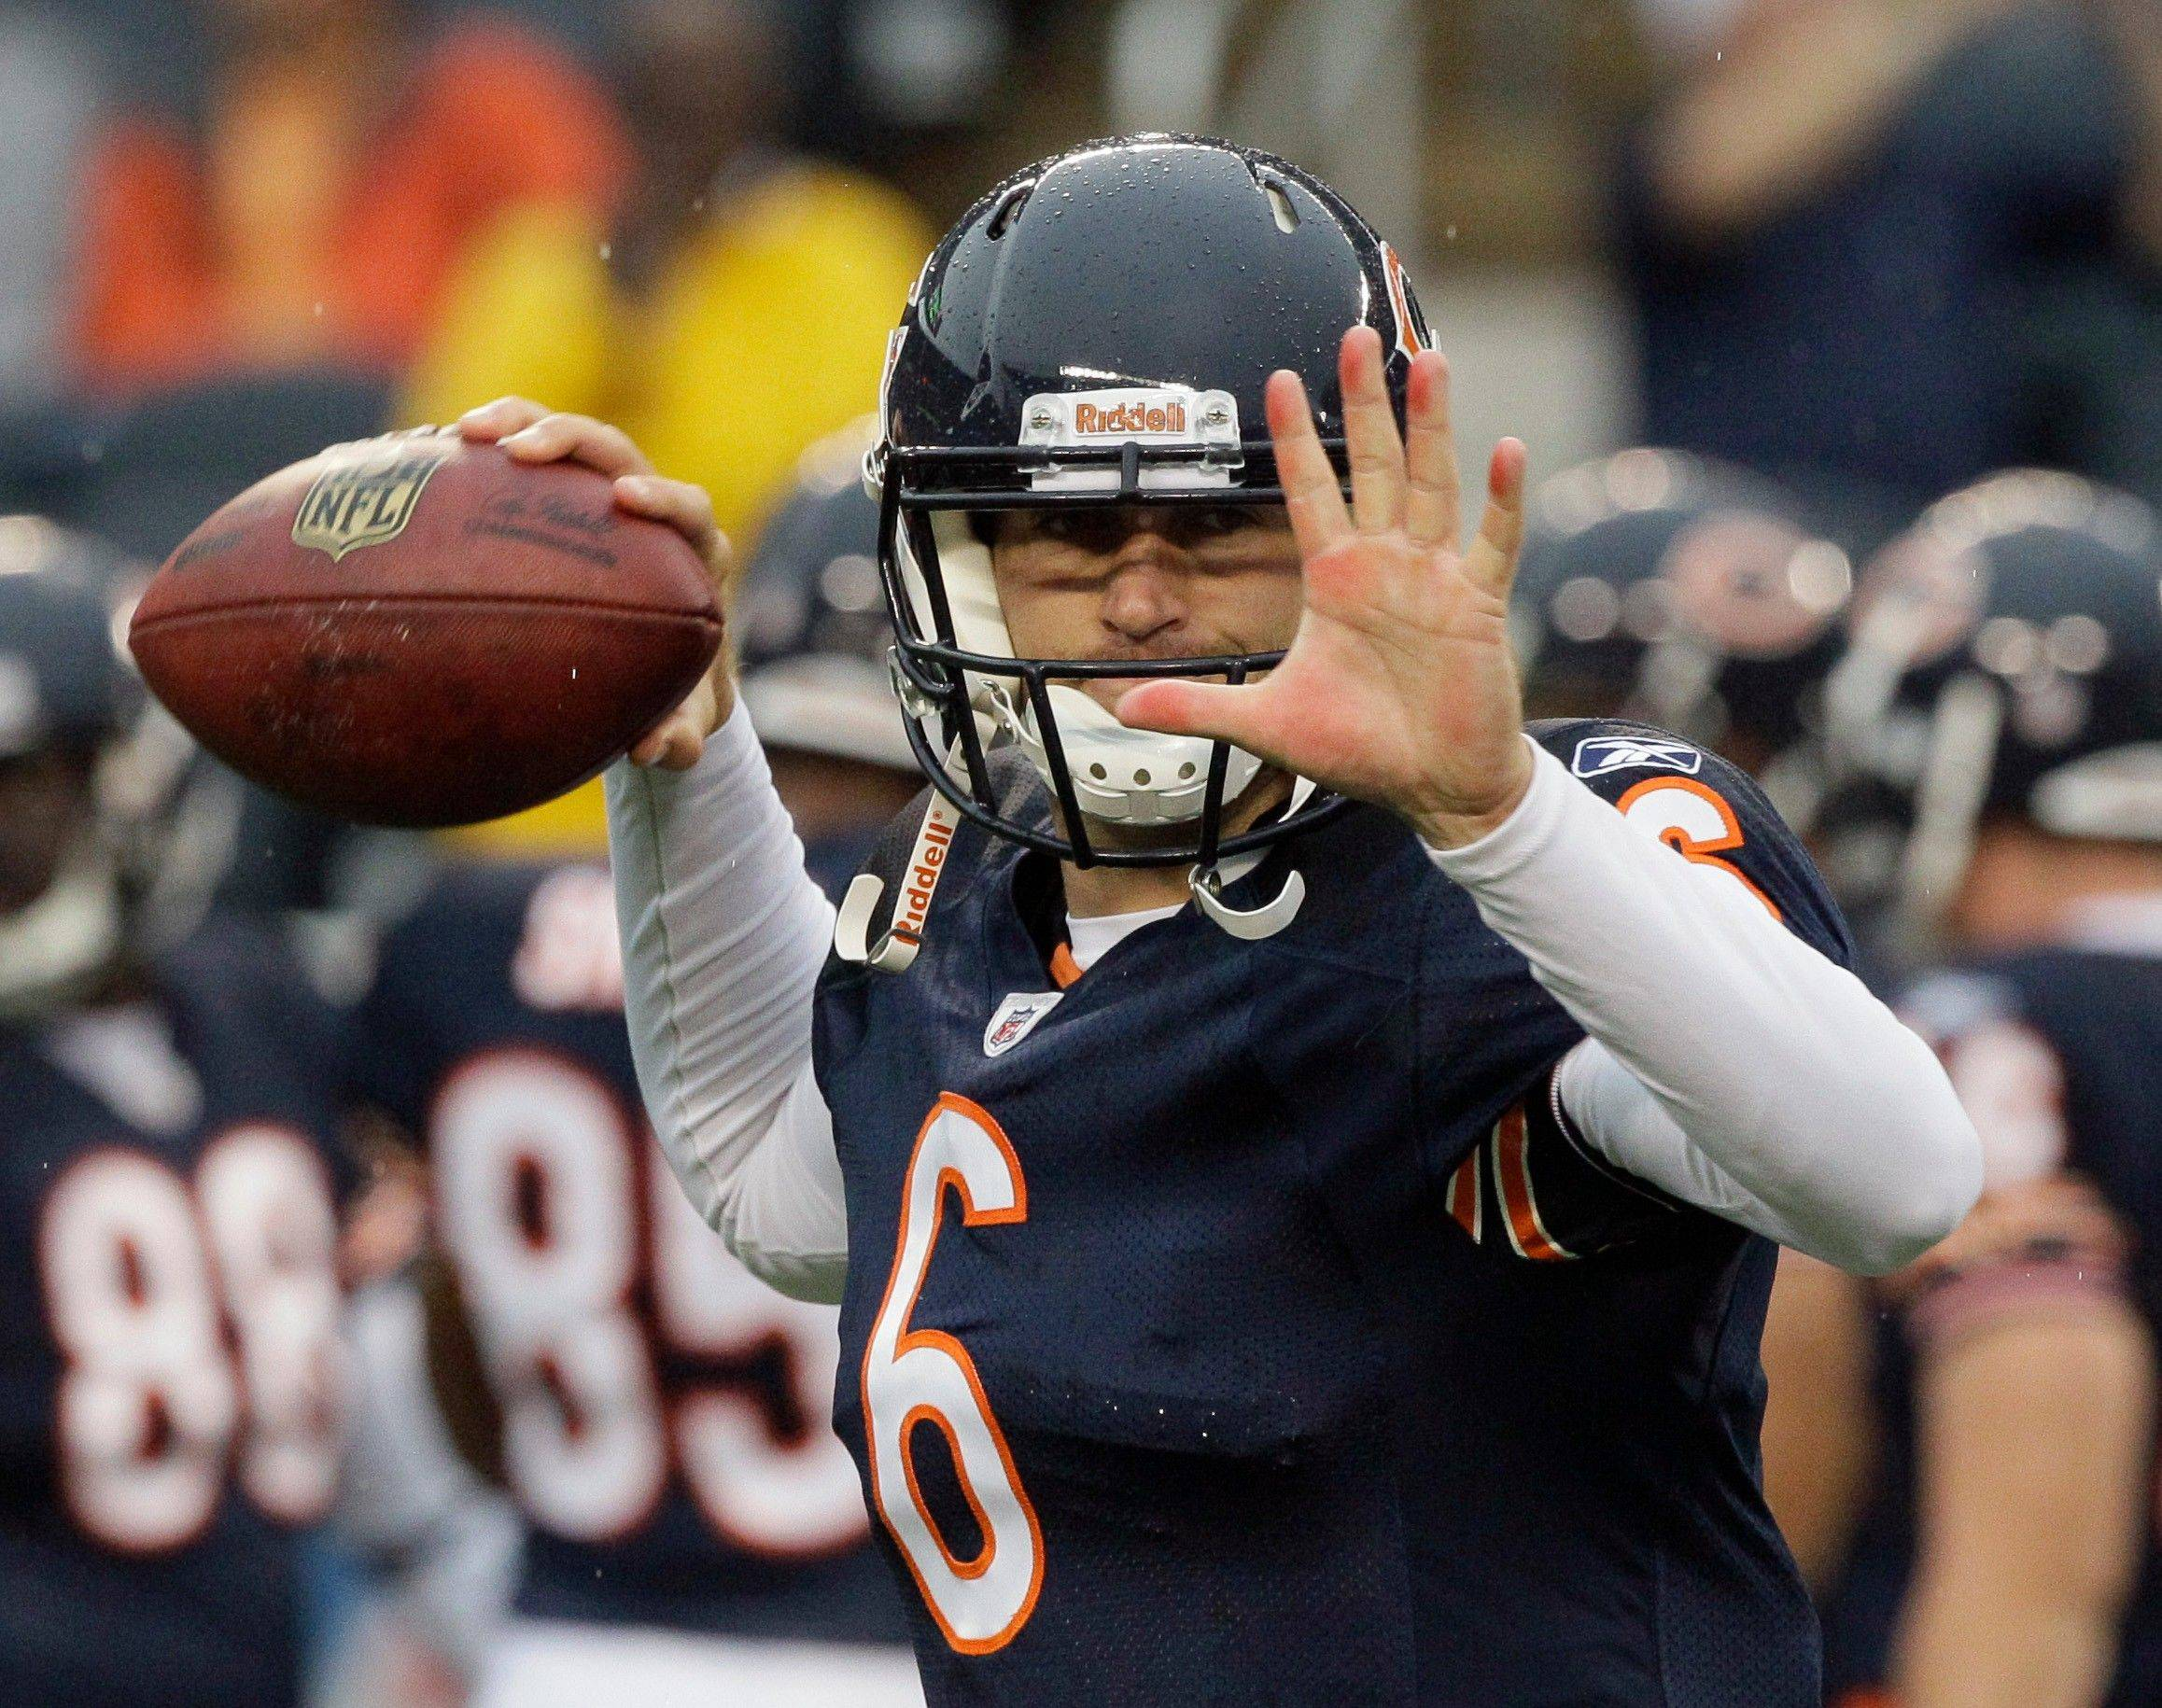 There have been a lot of distractions this preseason with the Bears, but the play of quarterback Jay Cutler hasn't made the negative list. He even handled the departure of Olin Kreutz rather well.